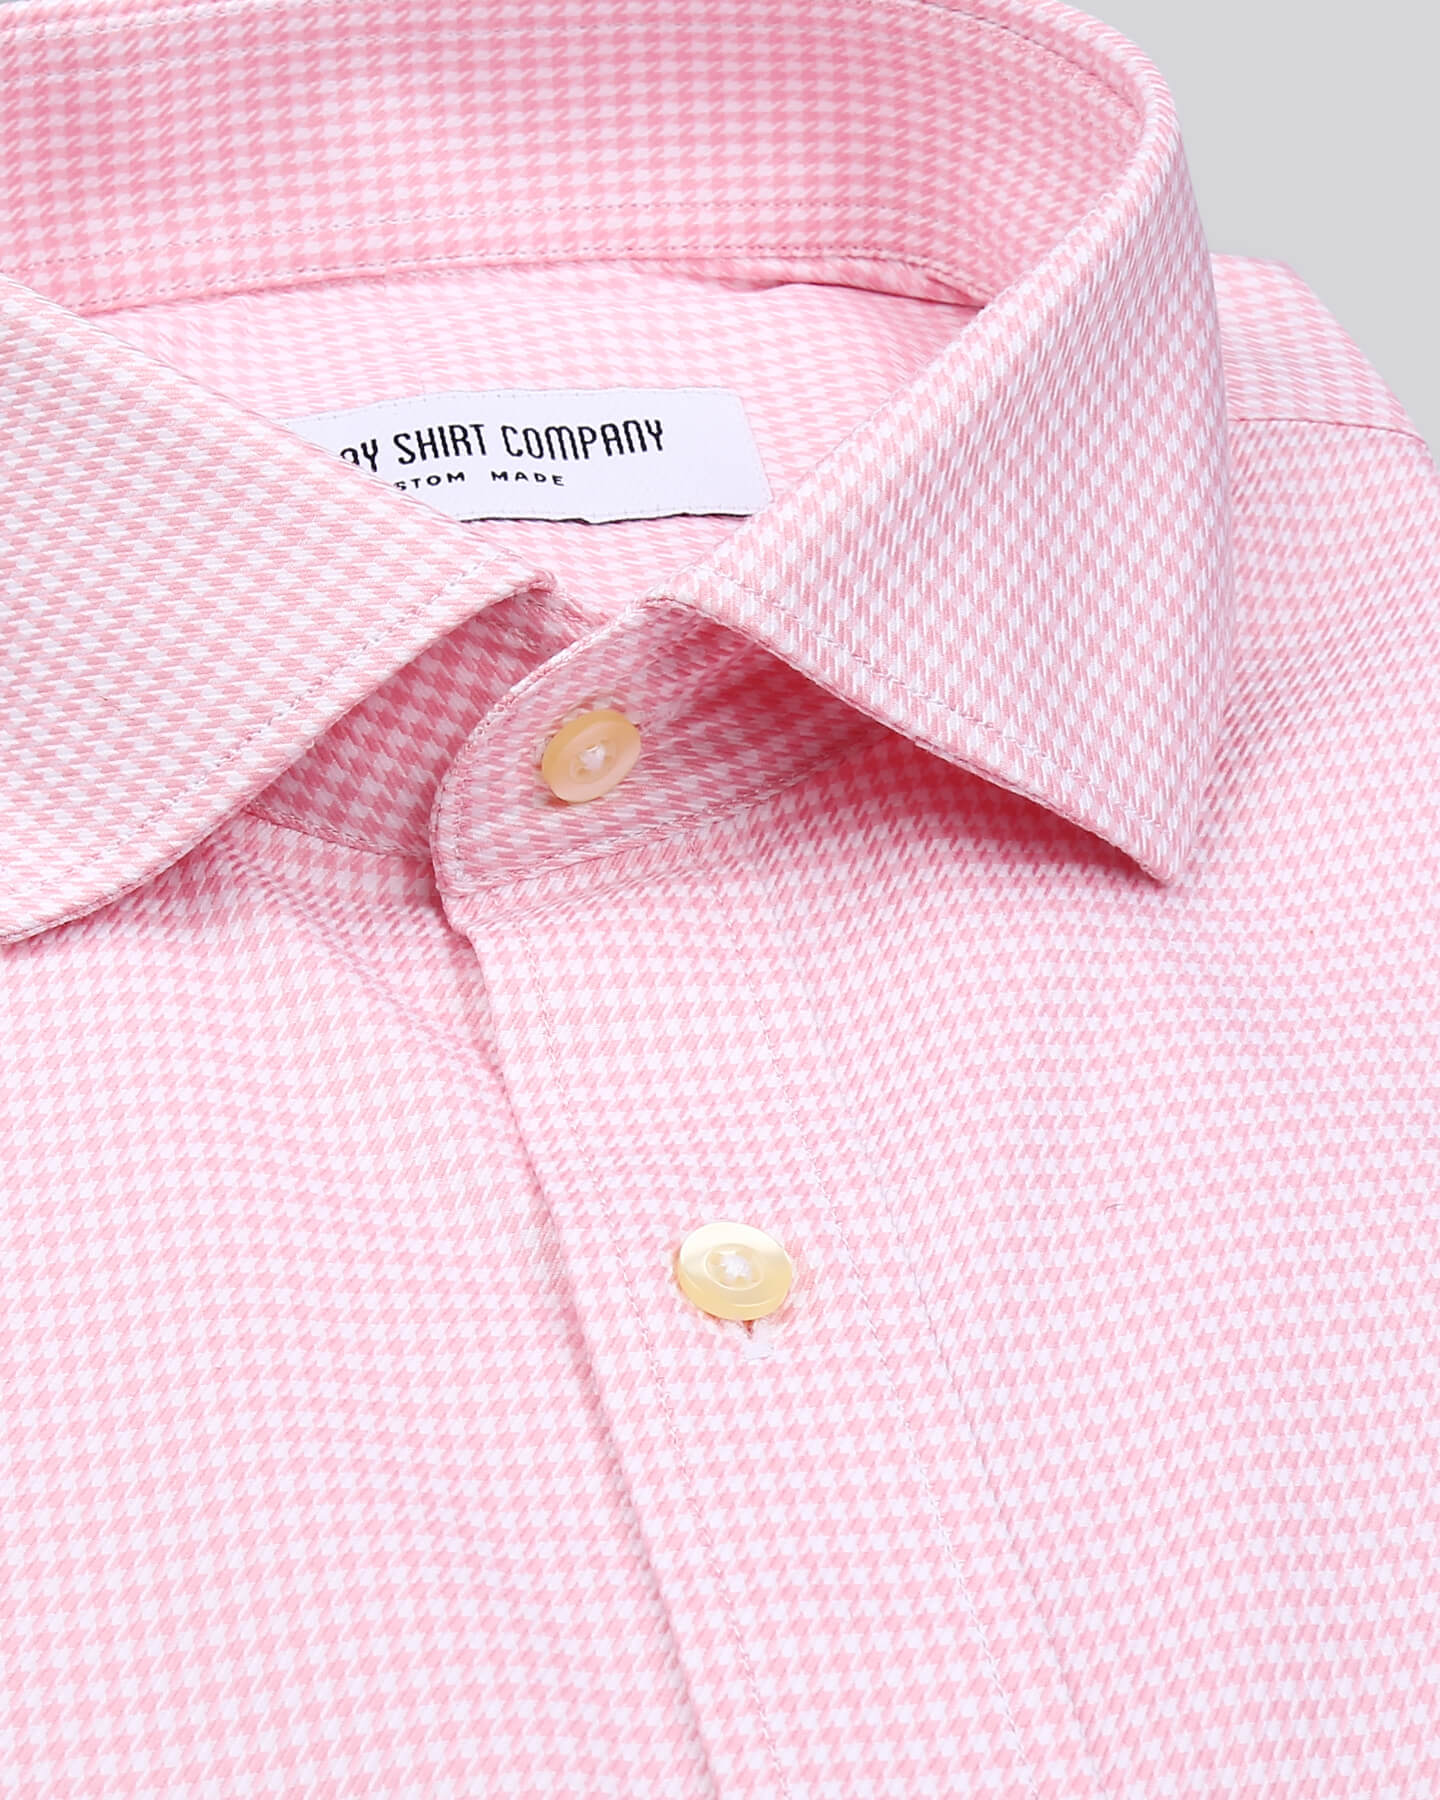 Super Pink Houndstooth Shirt